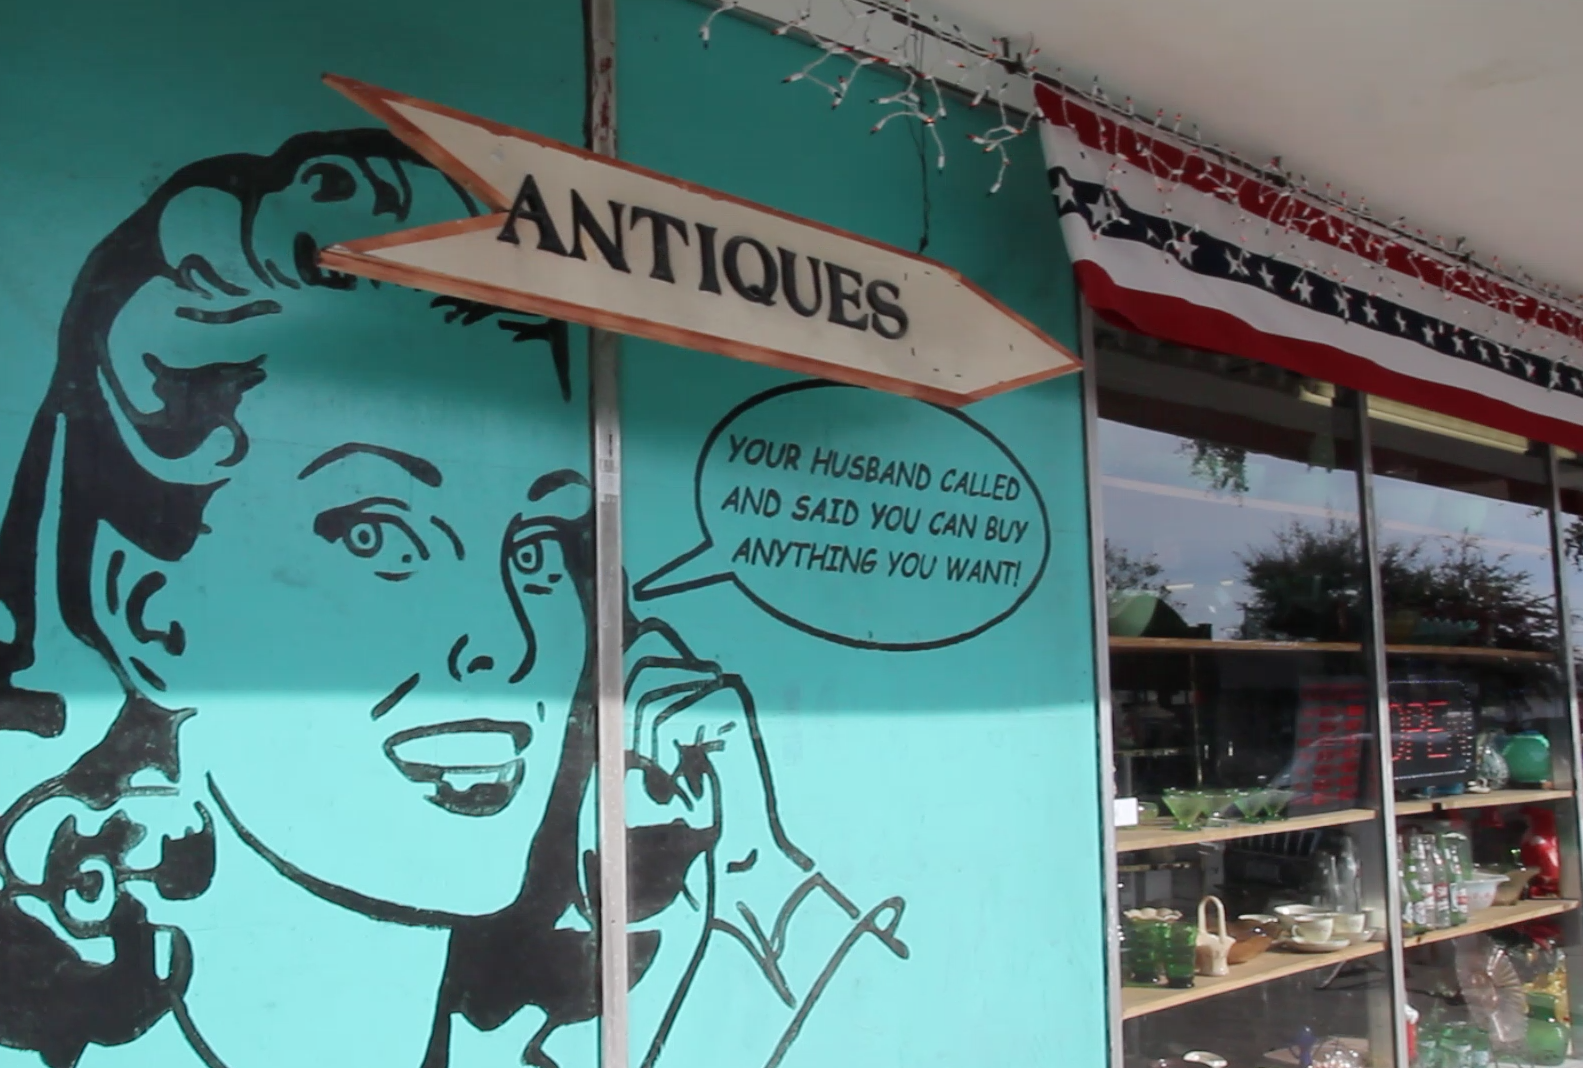 From boutique to big box, from antiques to today's treasures - you can find it all in La Porte. Make sure you shop our historic Main Street and then head to the other side of town and shop the brands!